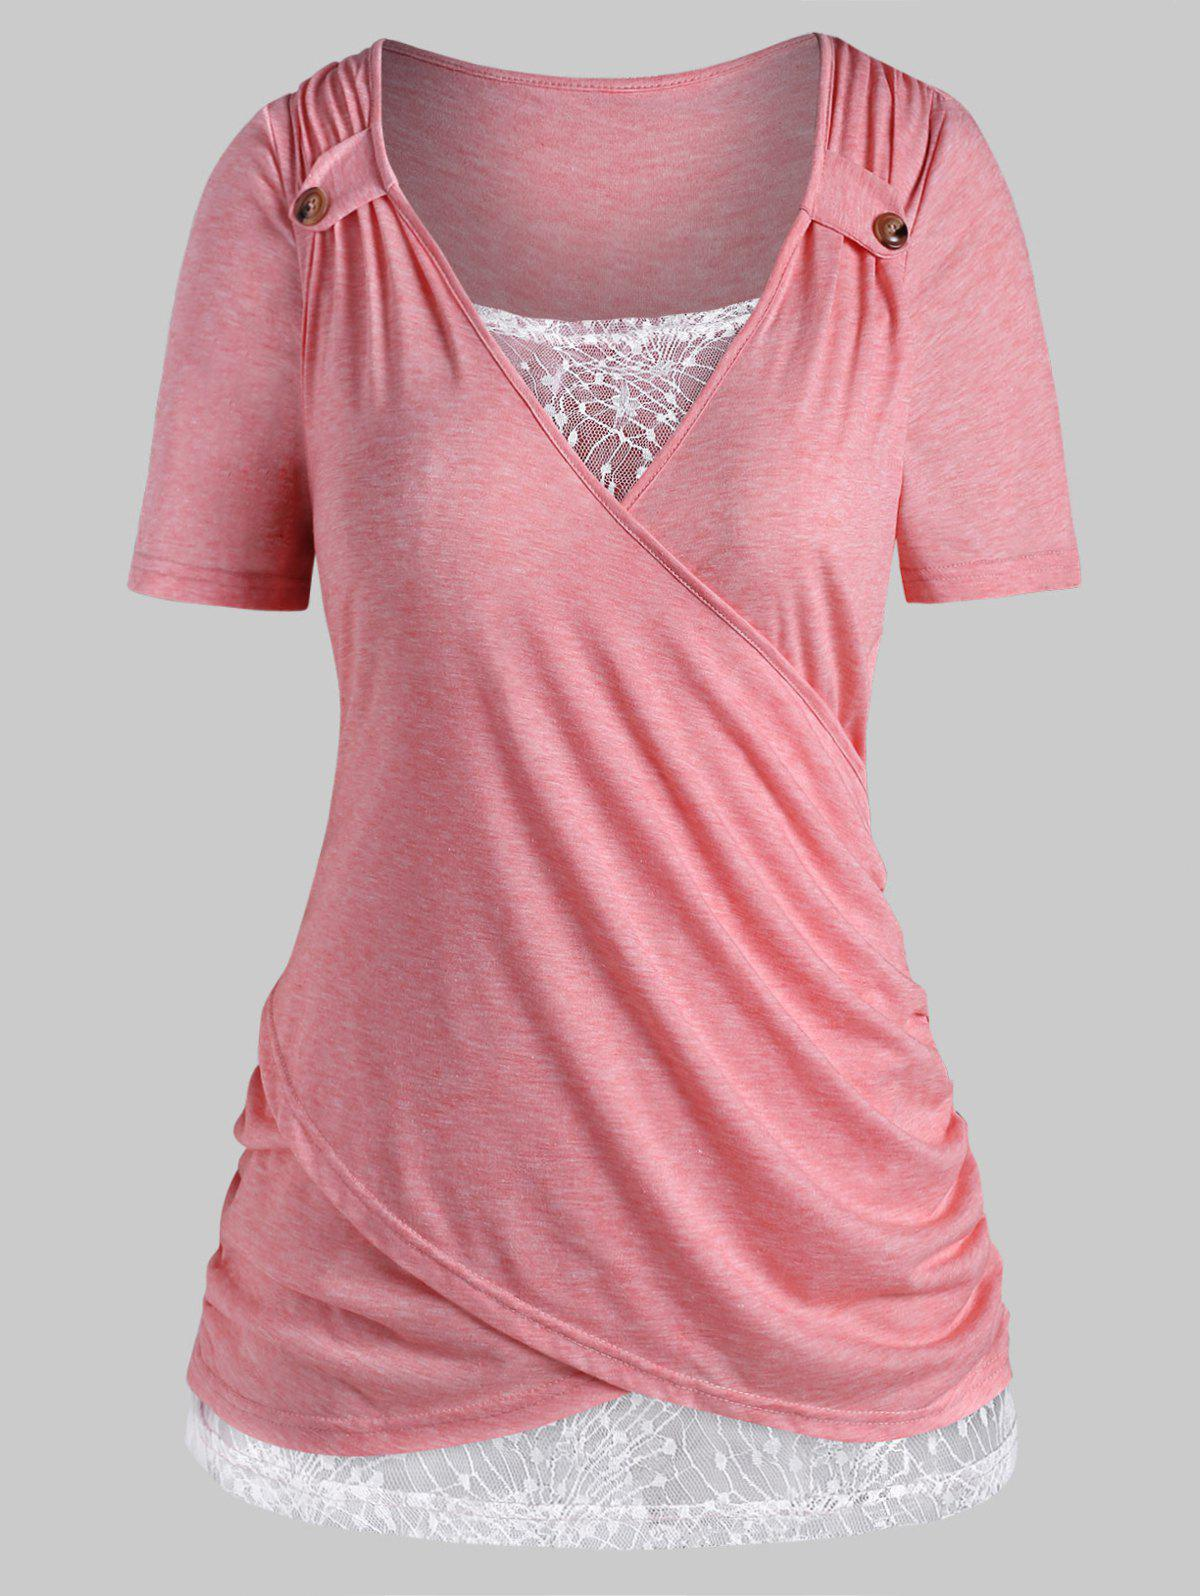 Plus Size Crossover Lace Insert T Shirt - LIGHT PINK 5X